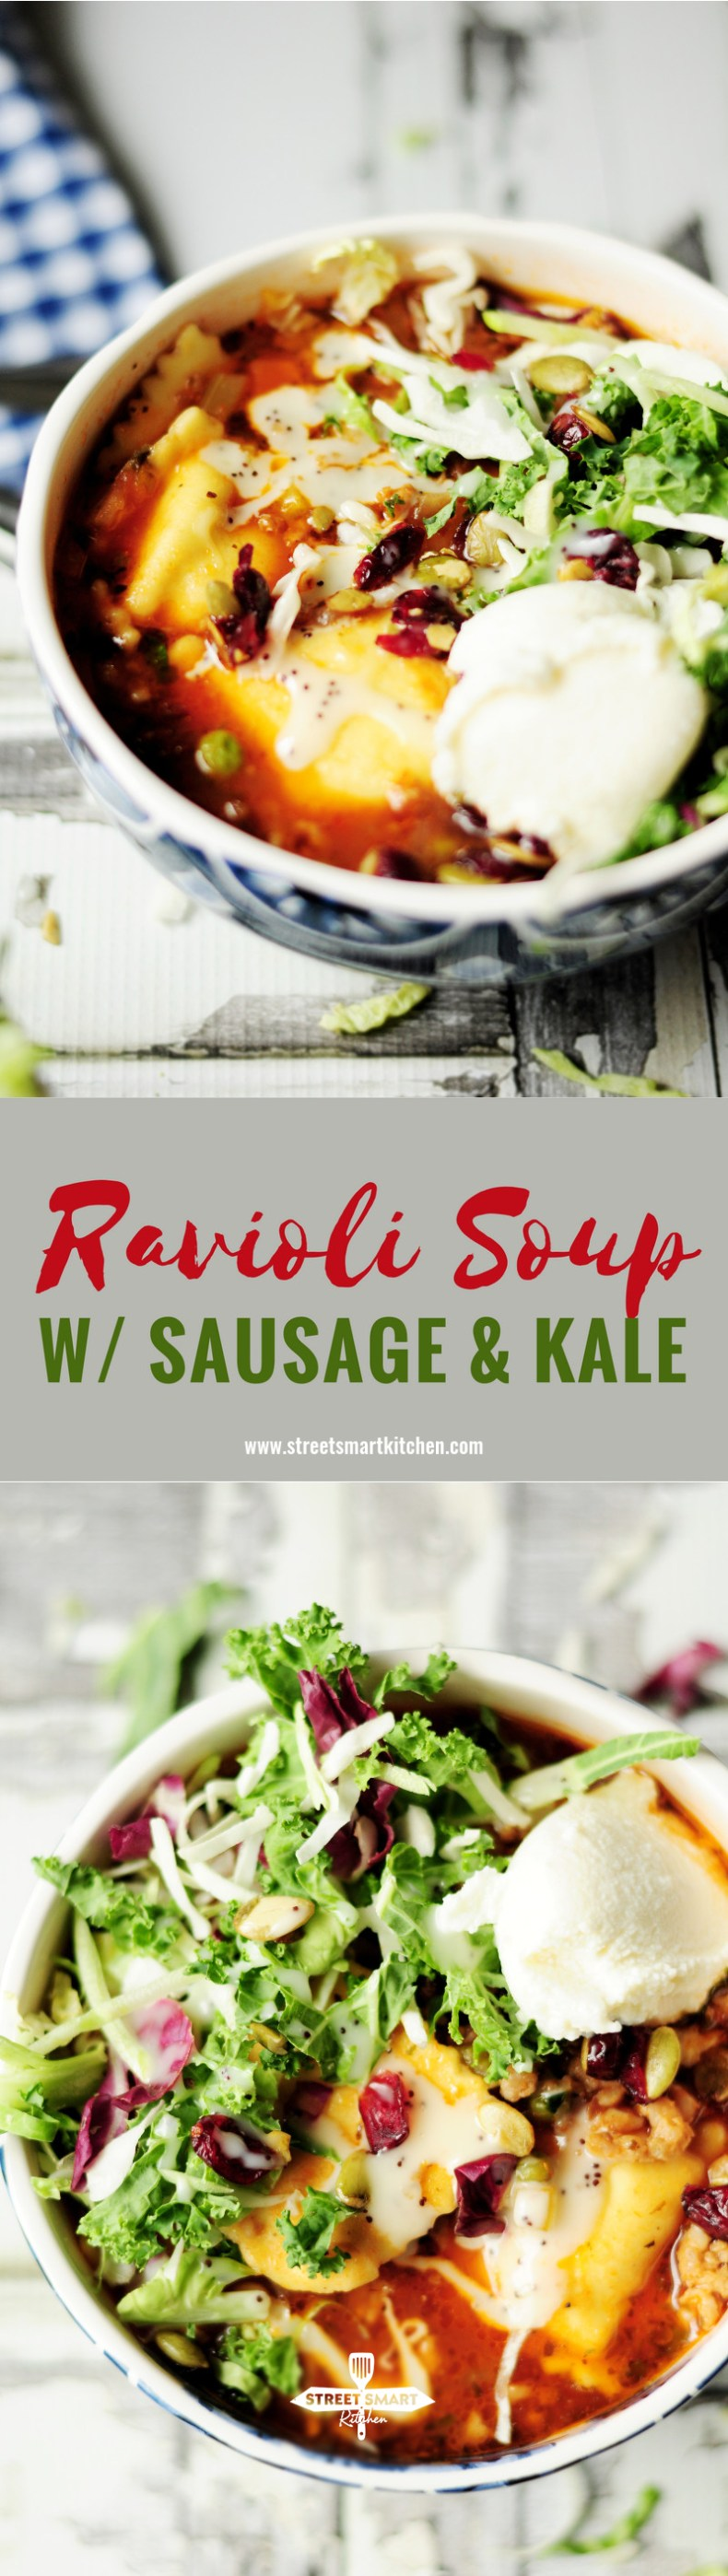 This ravioli soup is a hearty, yet balanced winter meal that offers an amazing sauce over cheese ravioli with a pop of kale greens to boost the healthiness!